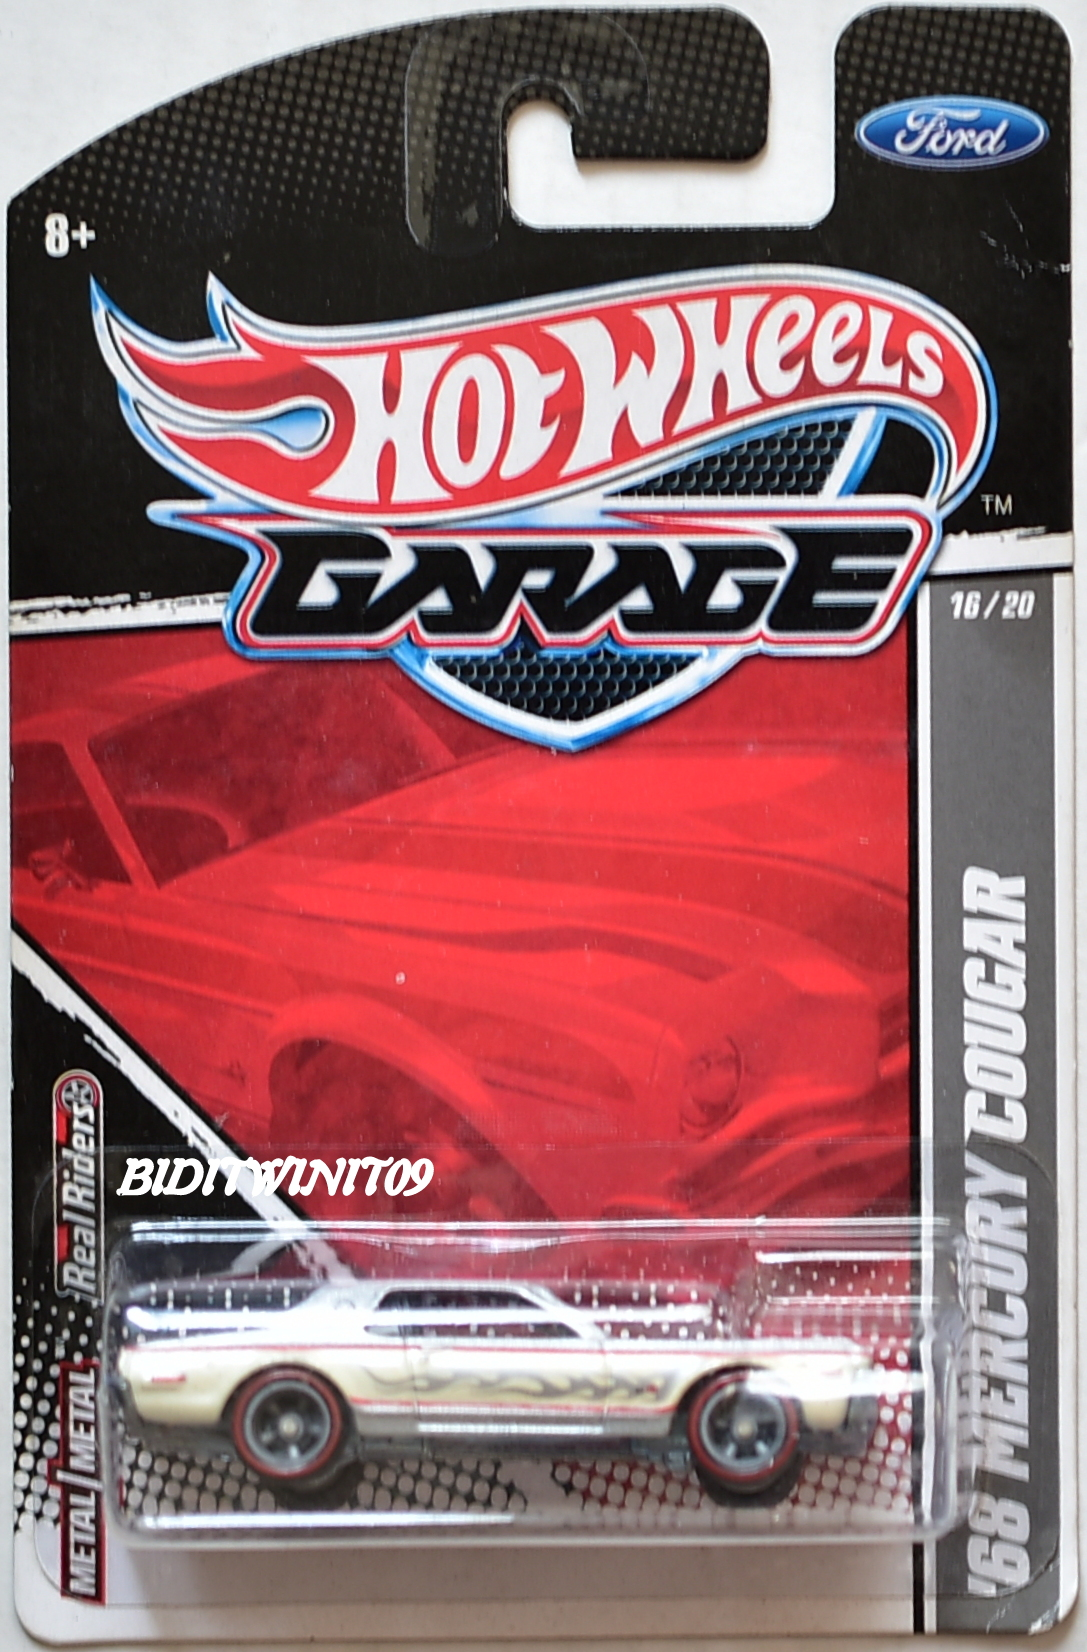 HOT WHEELS 2011 GARAGE '68 MERCURY COUGAR #16/20